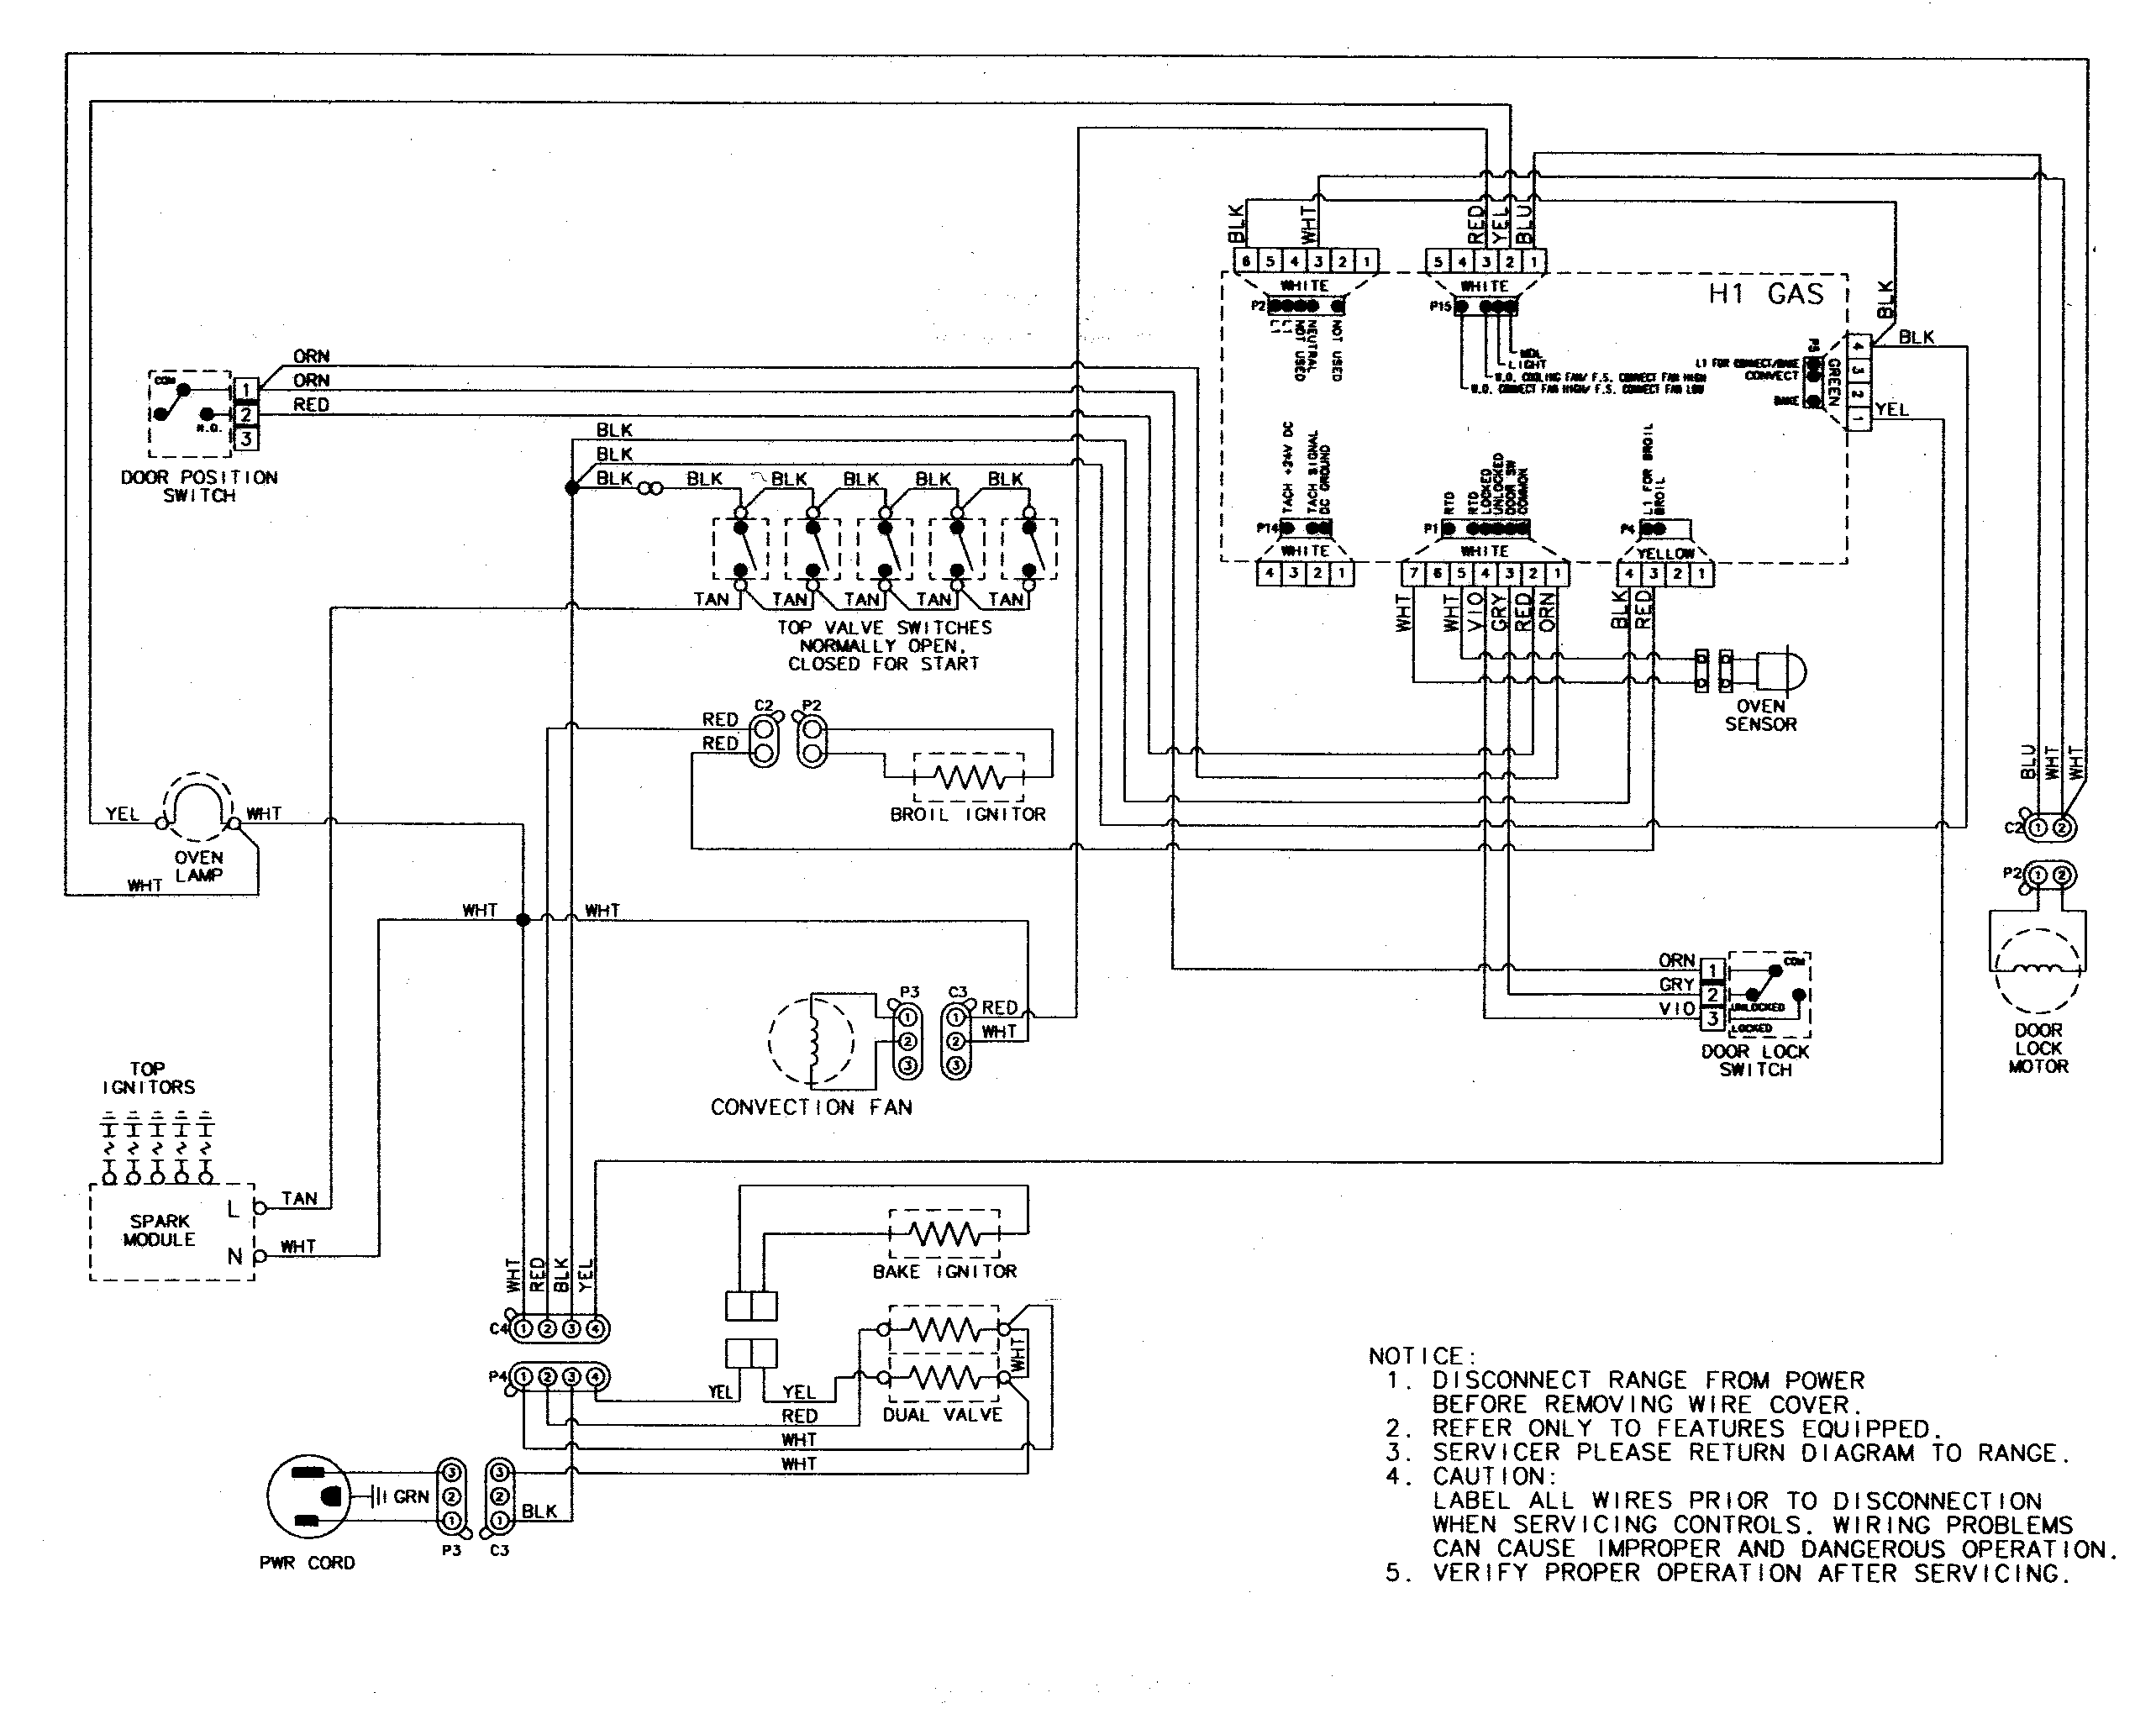 Outstanding Amana Ac Wiring Diagram Wiring Library Wiring Digital Resources Funiwoestevosnl